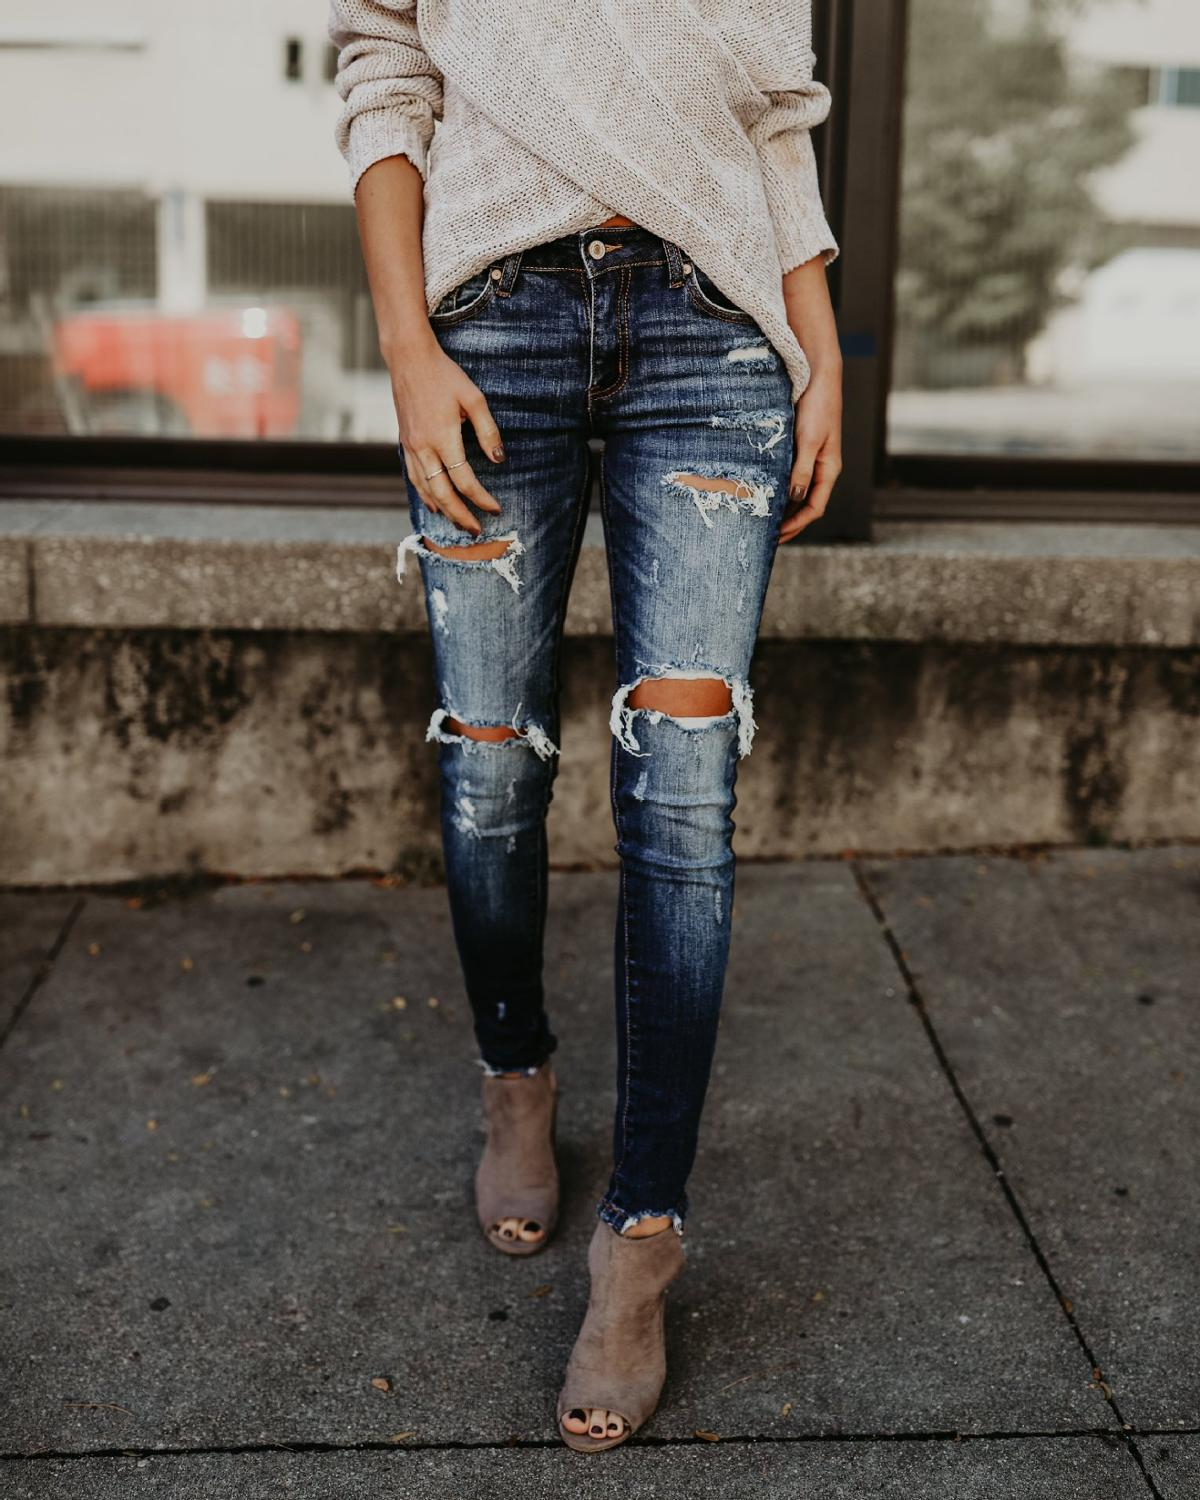 2019 Winter Womans Jeans Casual Ripped Hole Cropped Slim Fit Skinny Long Jeans Women High Waist Skinny Pencil Blue Denim Pants